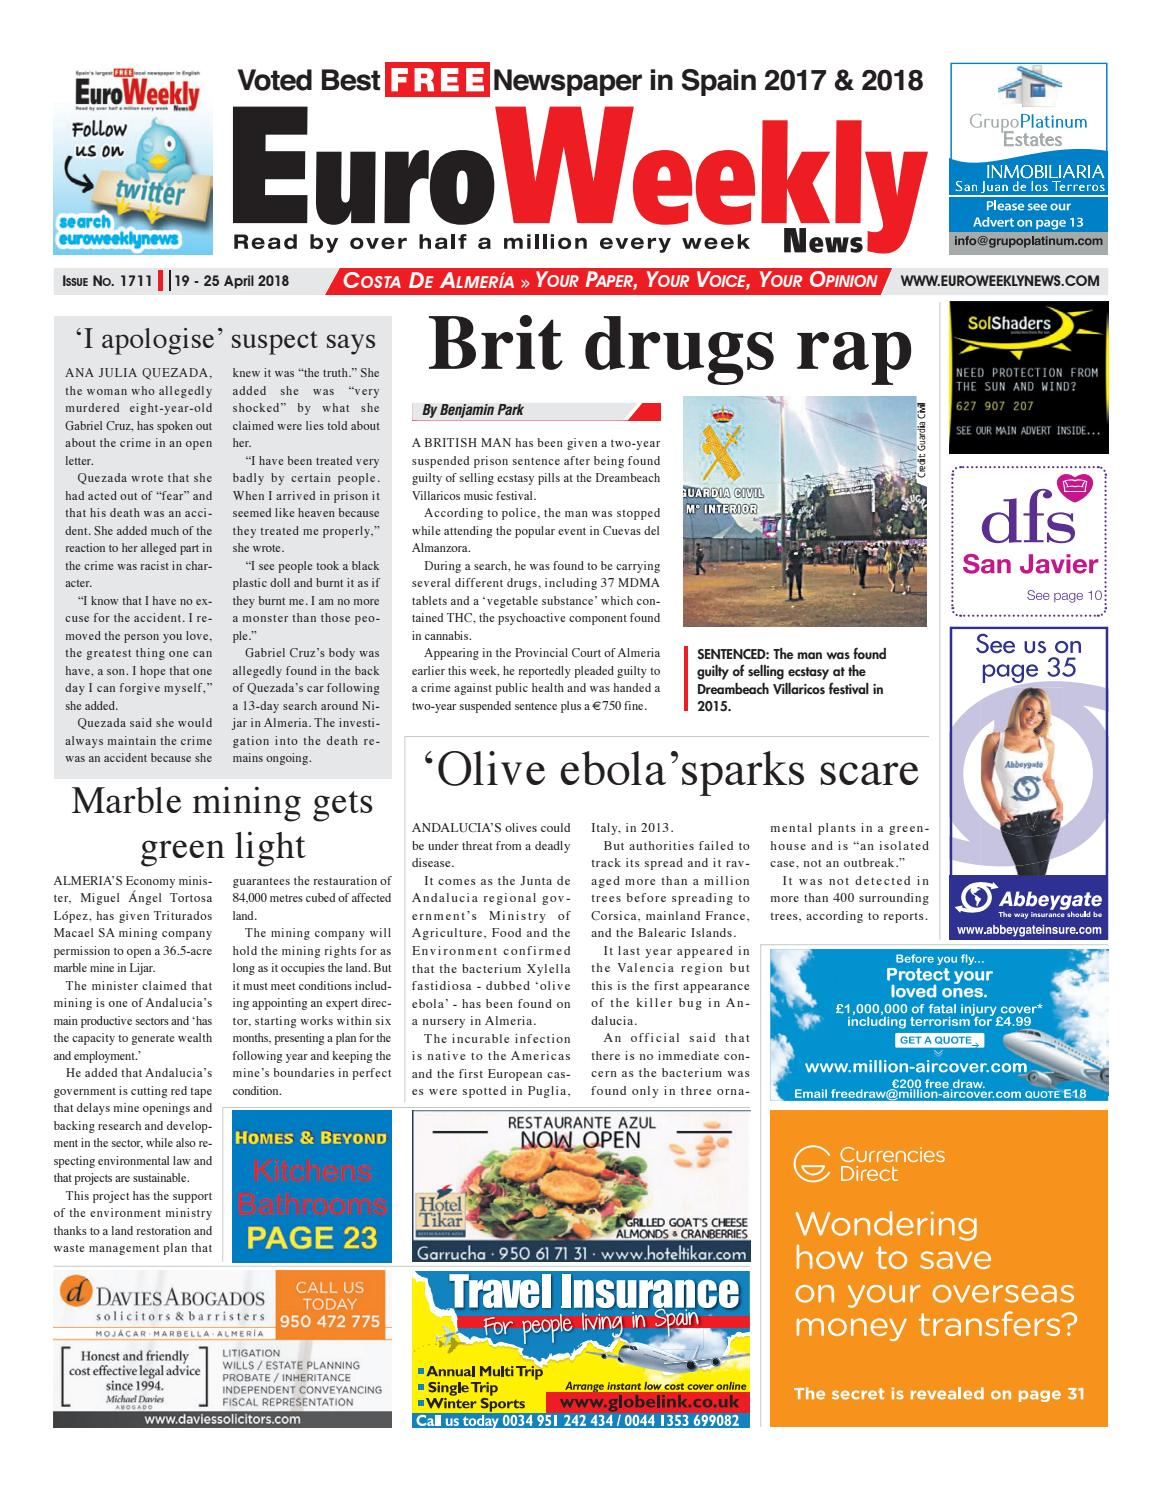 c454673de2a Euro Weekly News - Costa de Almeria 19 – 25 April 2018 Issue 1711 by Euro  Weekly News Media S.A. - issuu